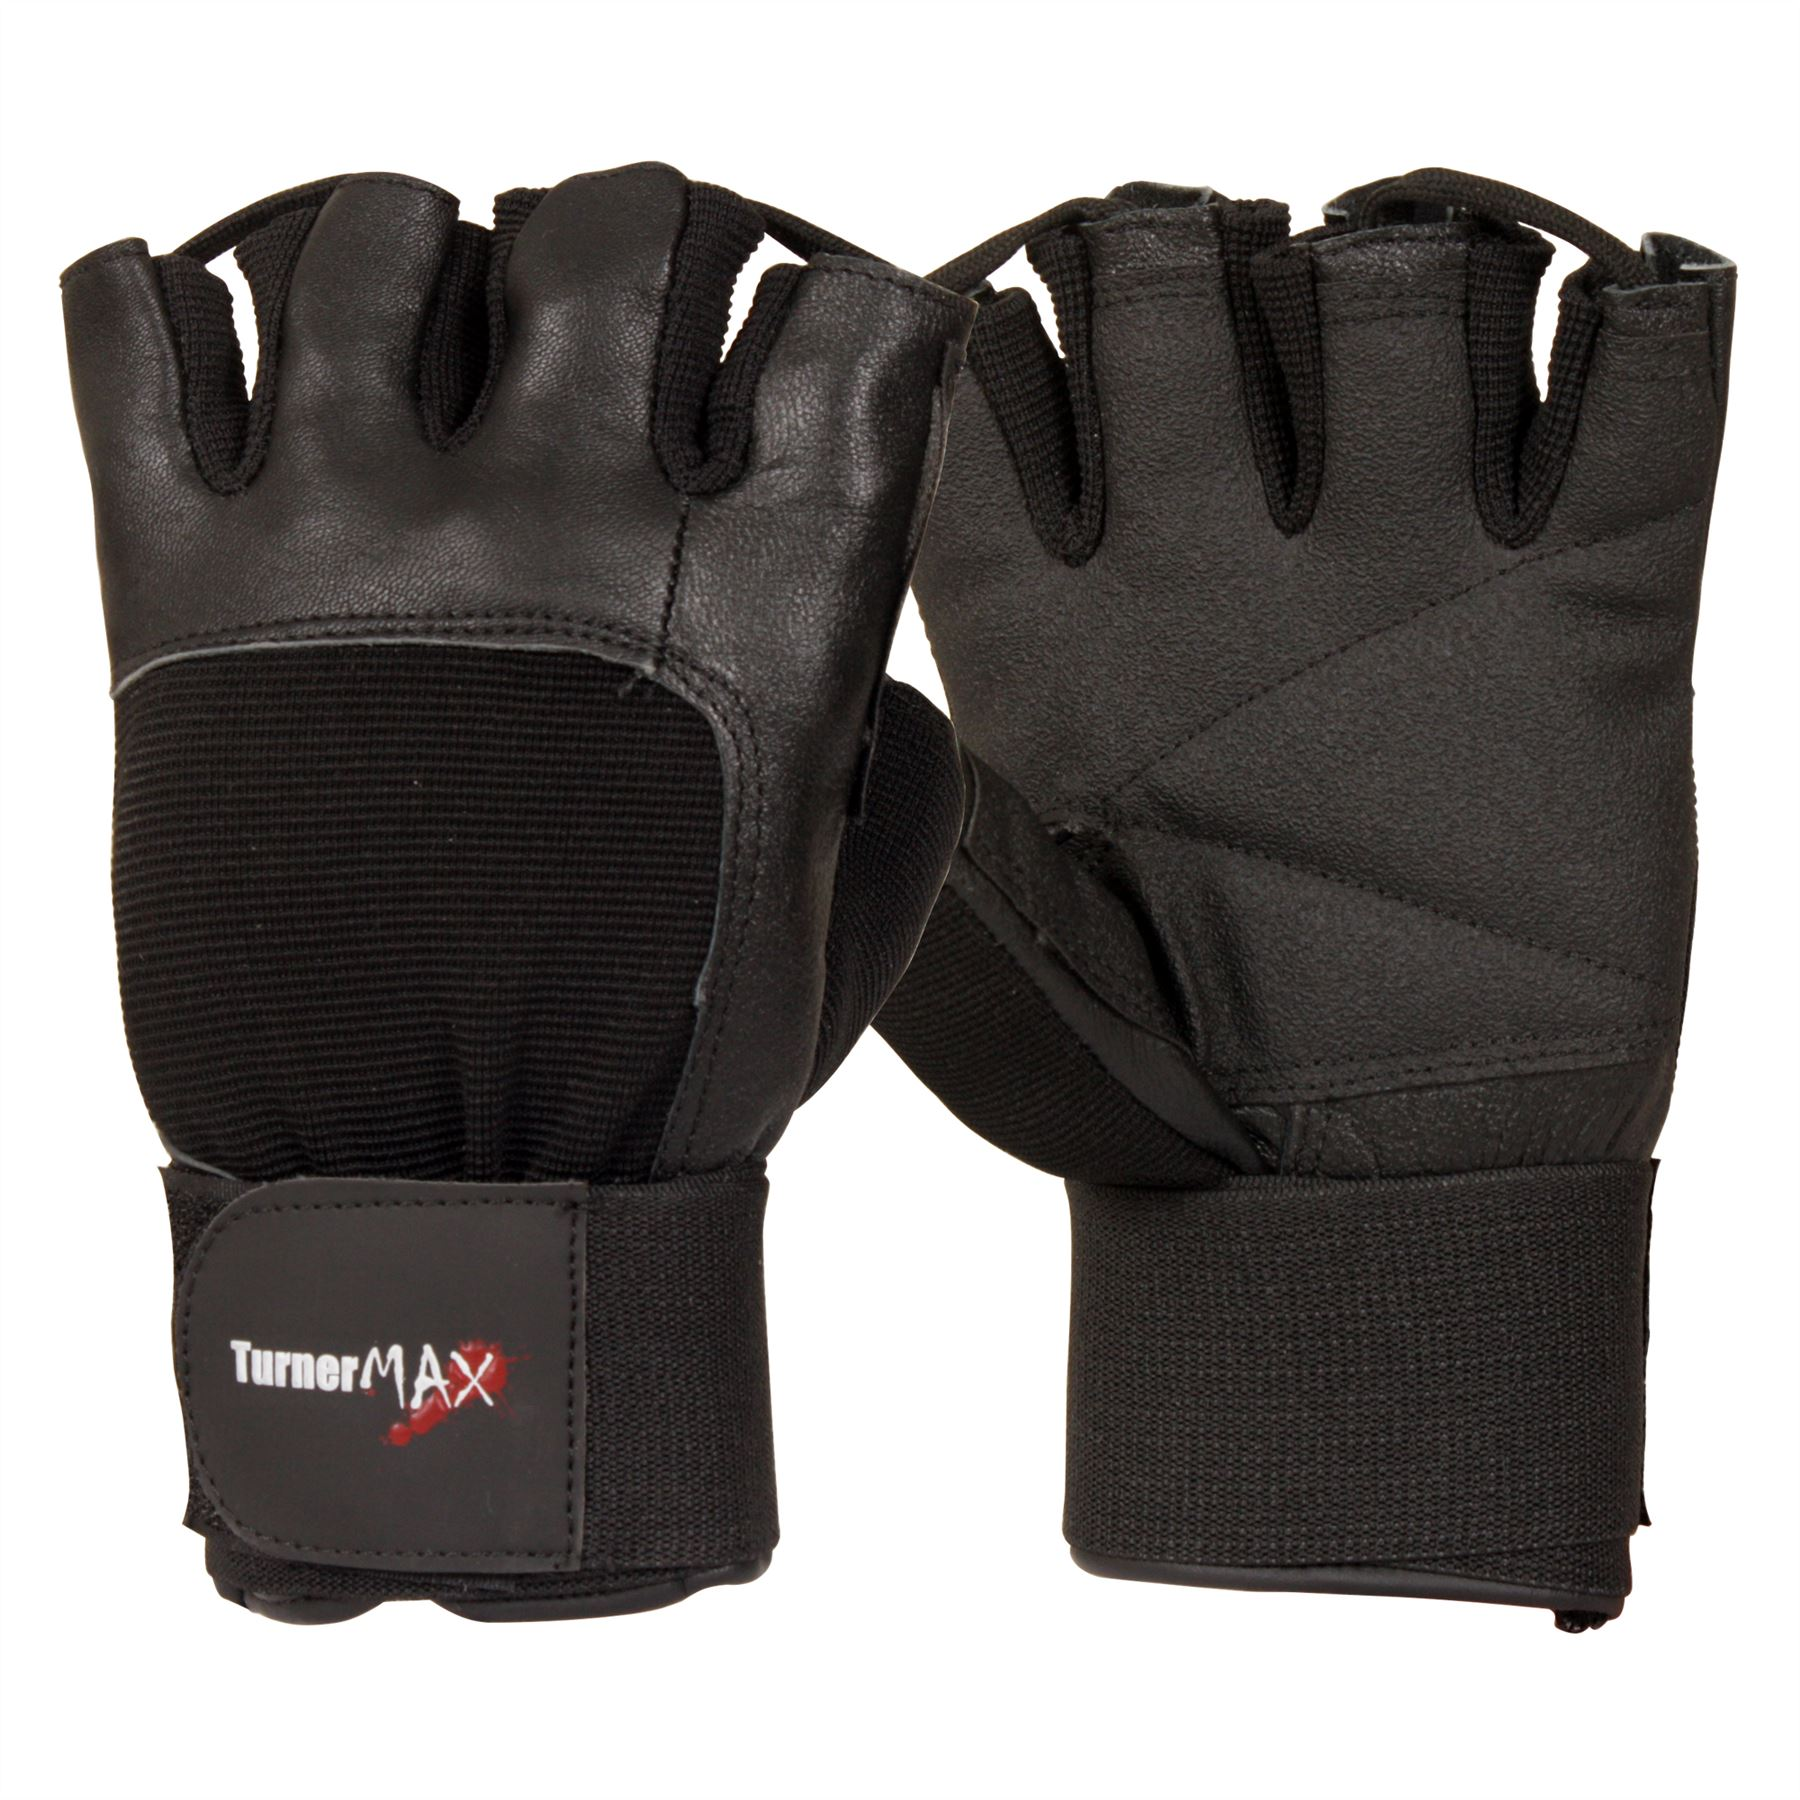 Turnermax Weight Lifting Body Building Gloves Gym Exercise